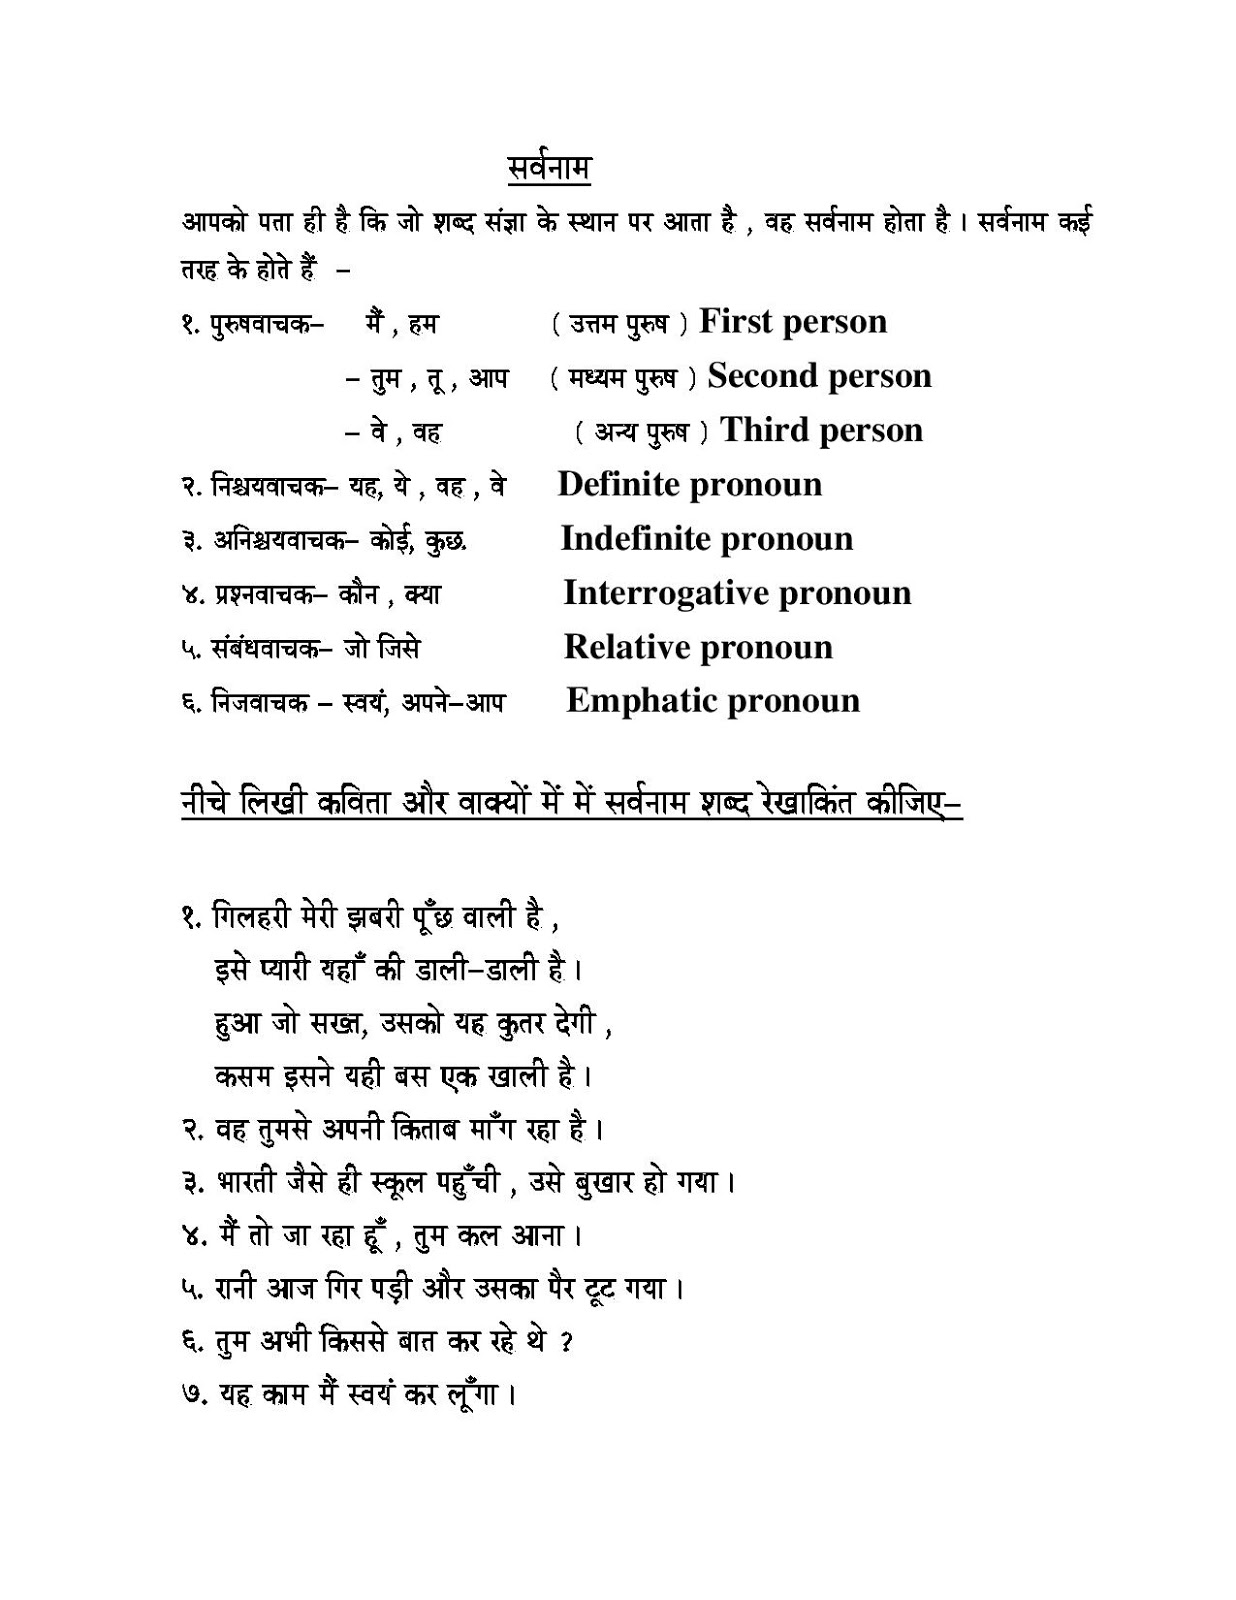 Comprehension worksheets for grade 7 cbse 2296746 - es-youland.info